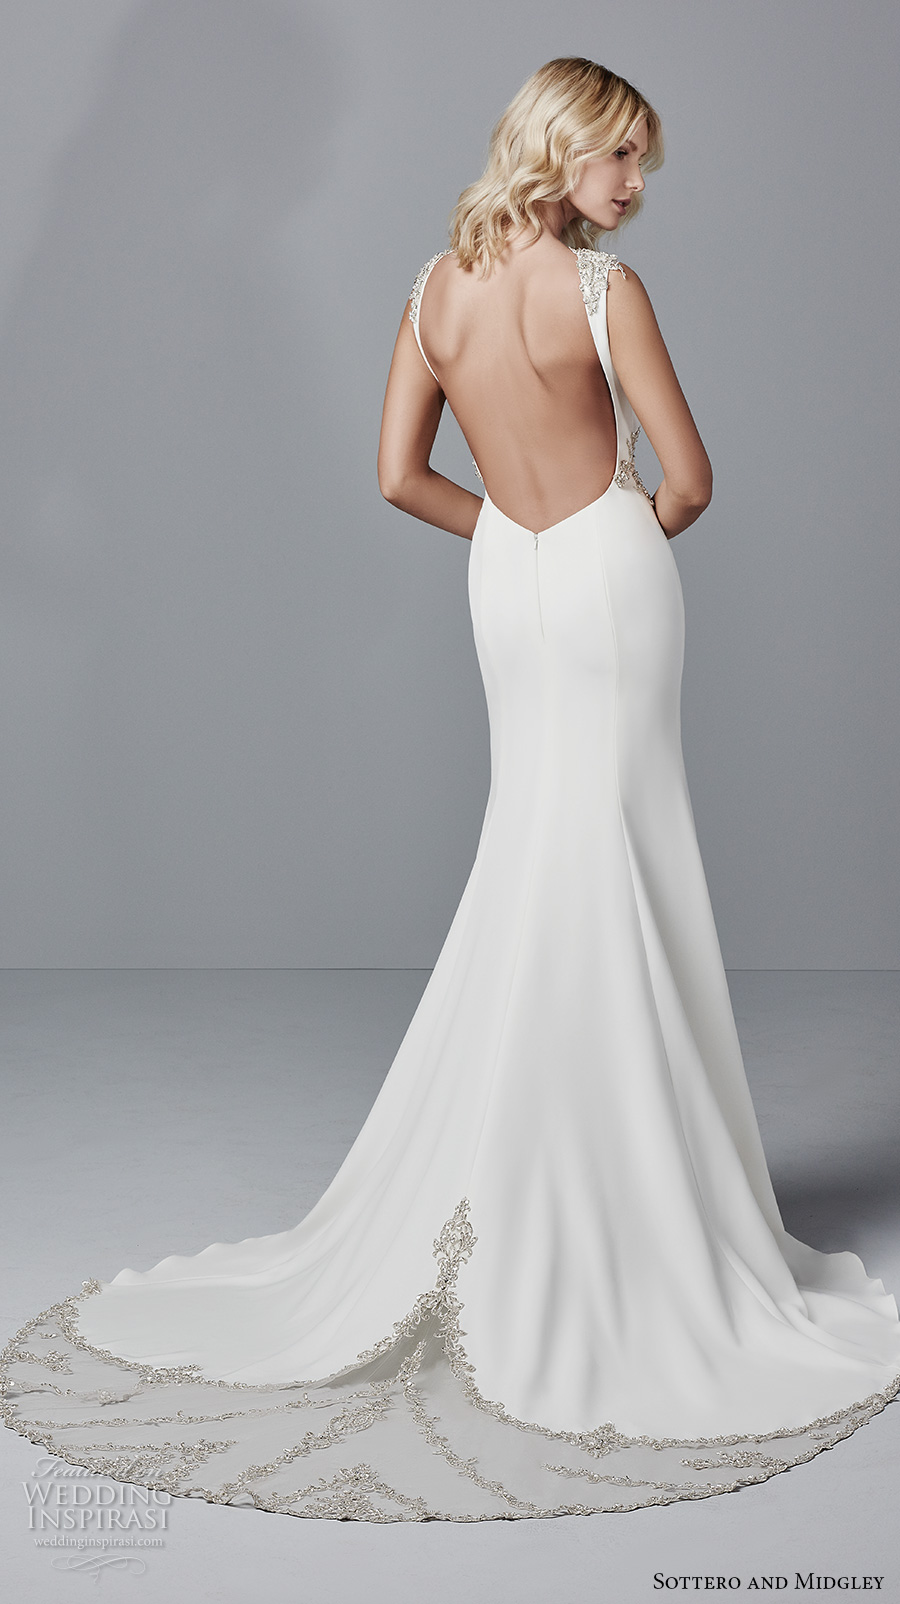 sottero midgley fall 2017 sleeveless bateau neckline simple clean classic fit and flare wedding dress open back chapel train (967) bv